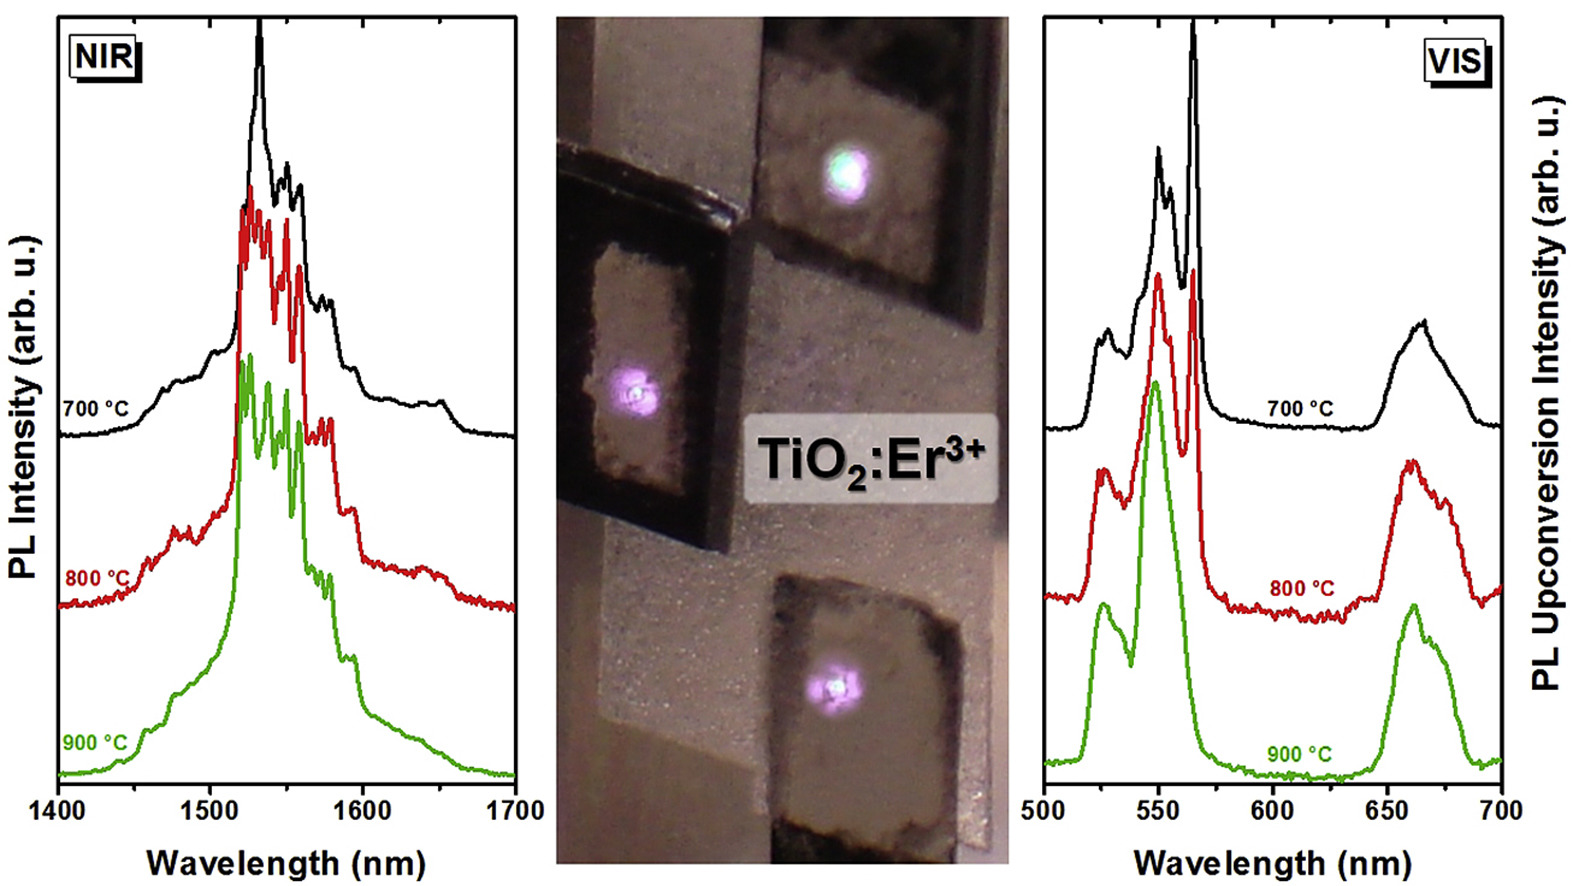 Evidencing early pyrochlore formation in rare-earth doped TiO2 nanocrystals: Structure sensing via VIS and NIR Er3+ light emission.